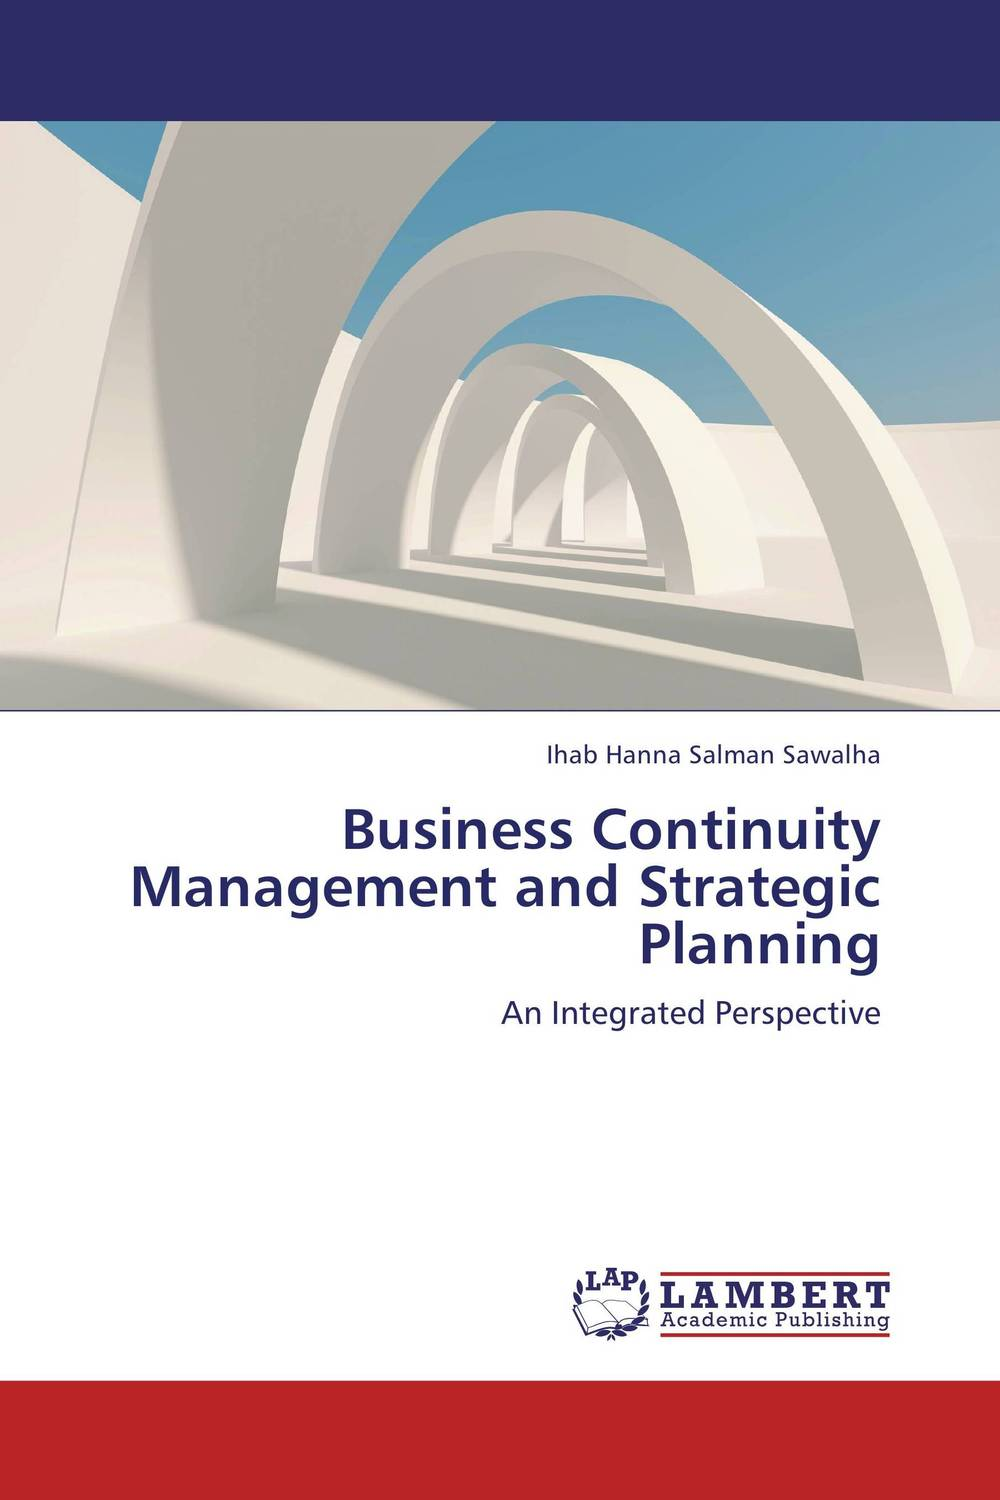 Business Continuity Management and Strategic Planning strategic planning and management in contemporary zambia